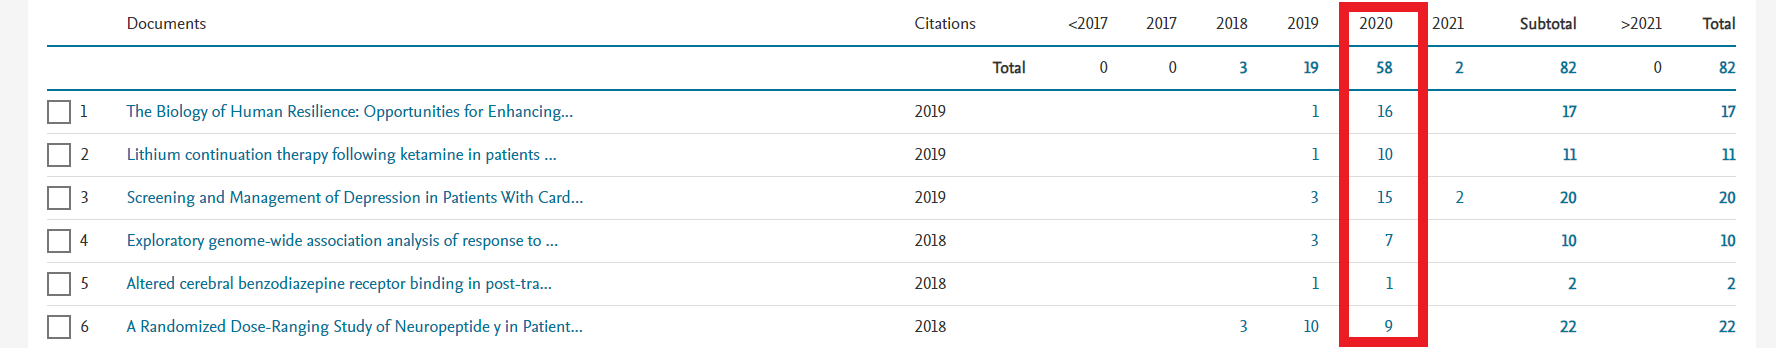 Scopus table of citations per year